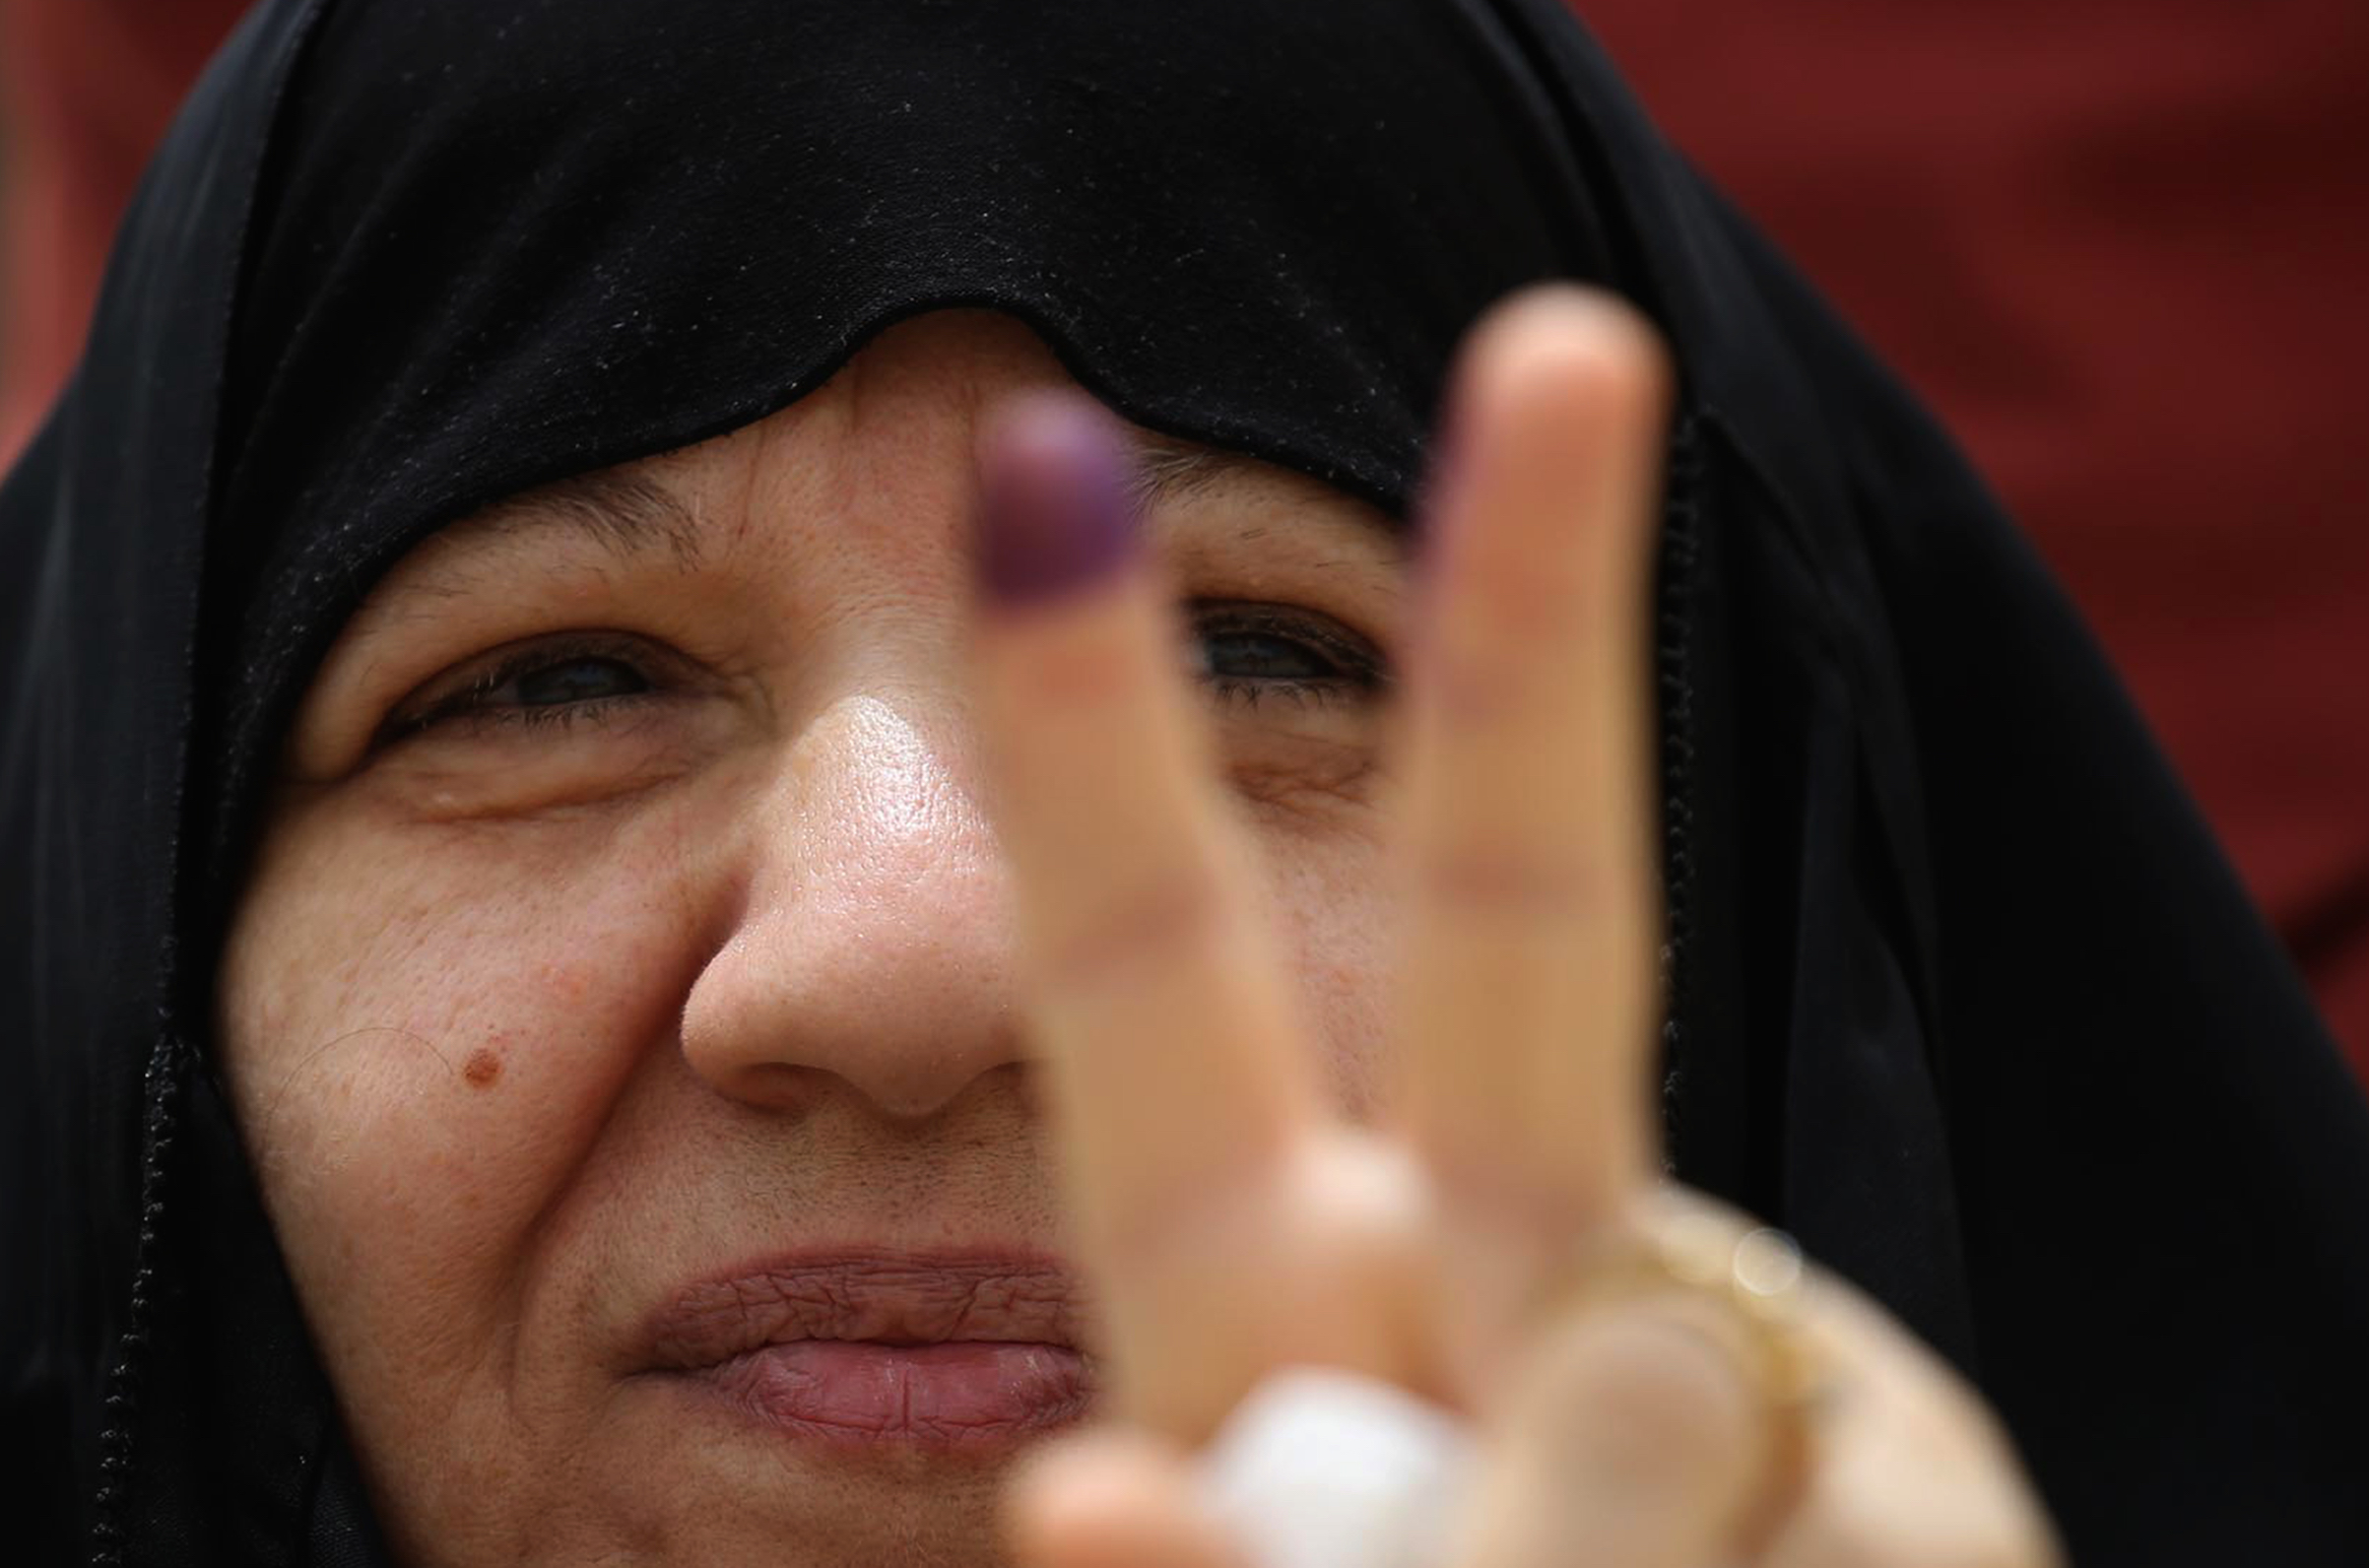 An Iraqi woman voter flashes the victory gesture with her ink-stained index finger at a poll station in the holy city of Karbala on May 12, 2018.